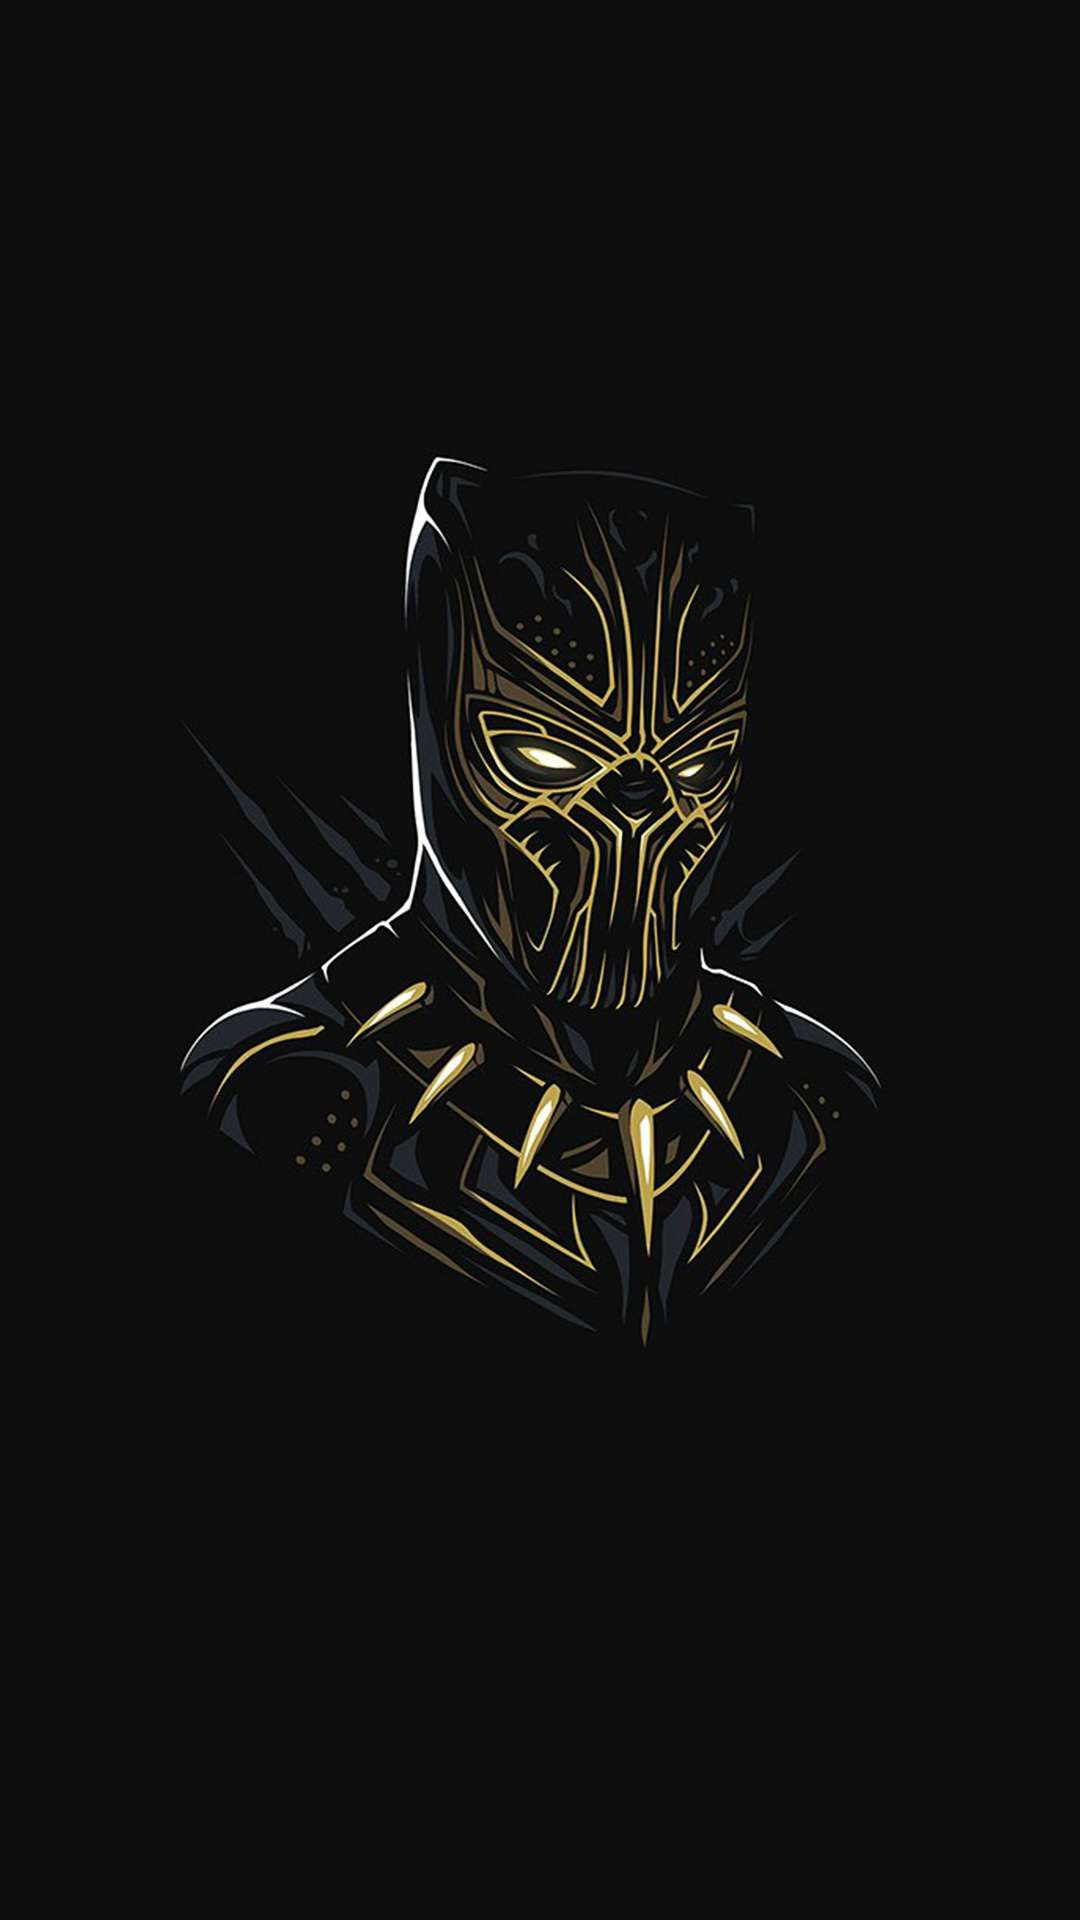 Black Panther Killmonger Minimal Iphone Wallpaper Black Panther Marvel Marvel Wallpaper Hd Marvel Wallpaper